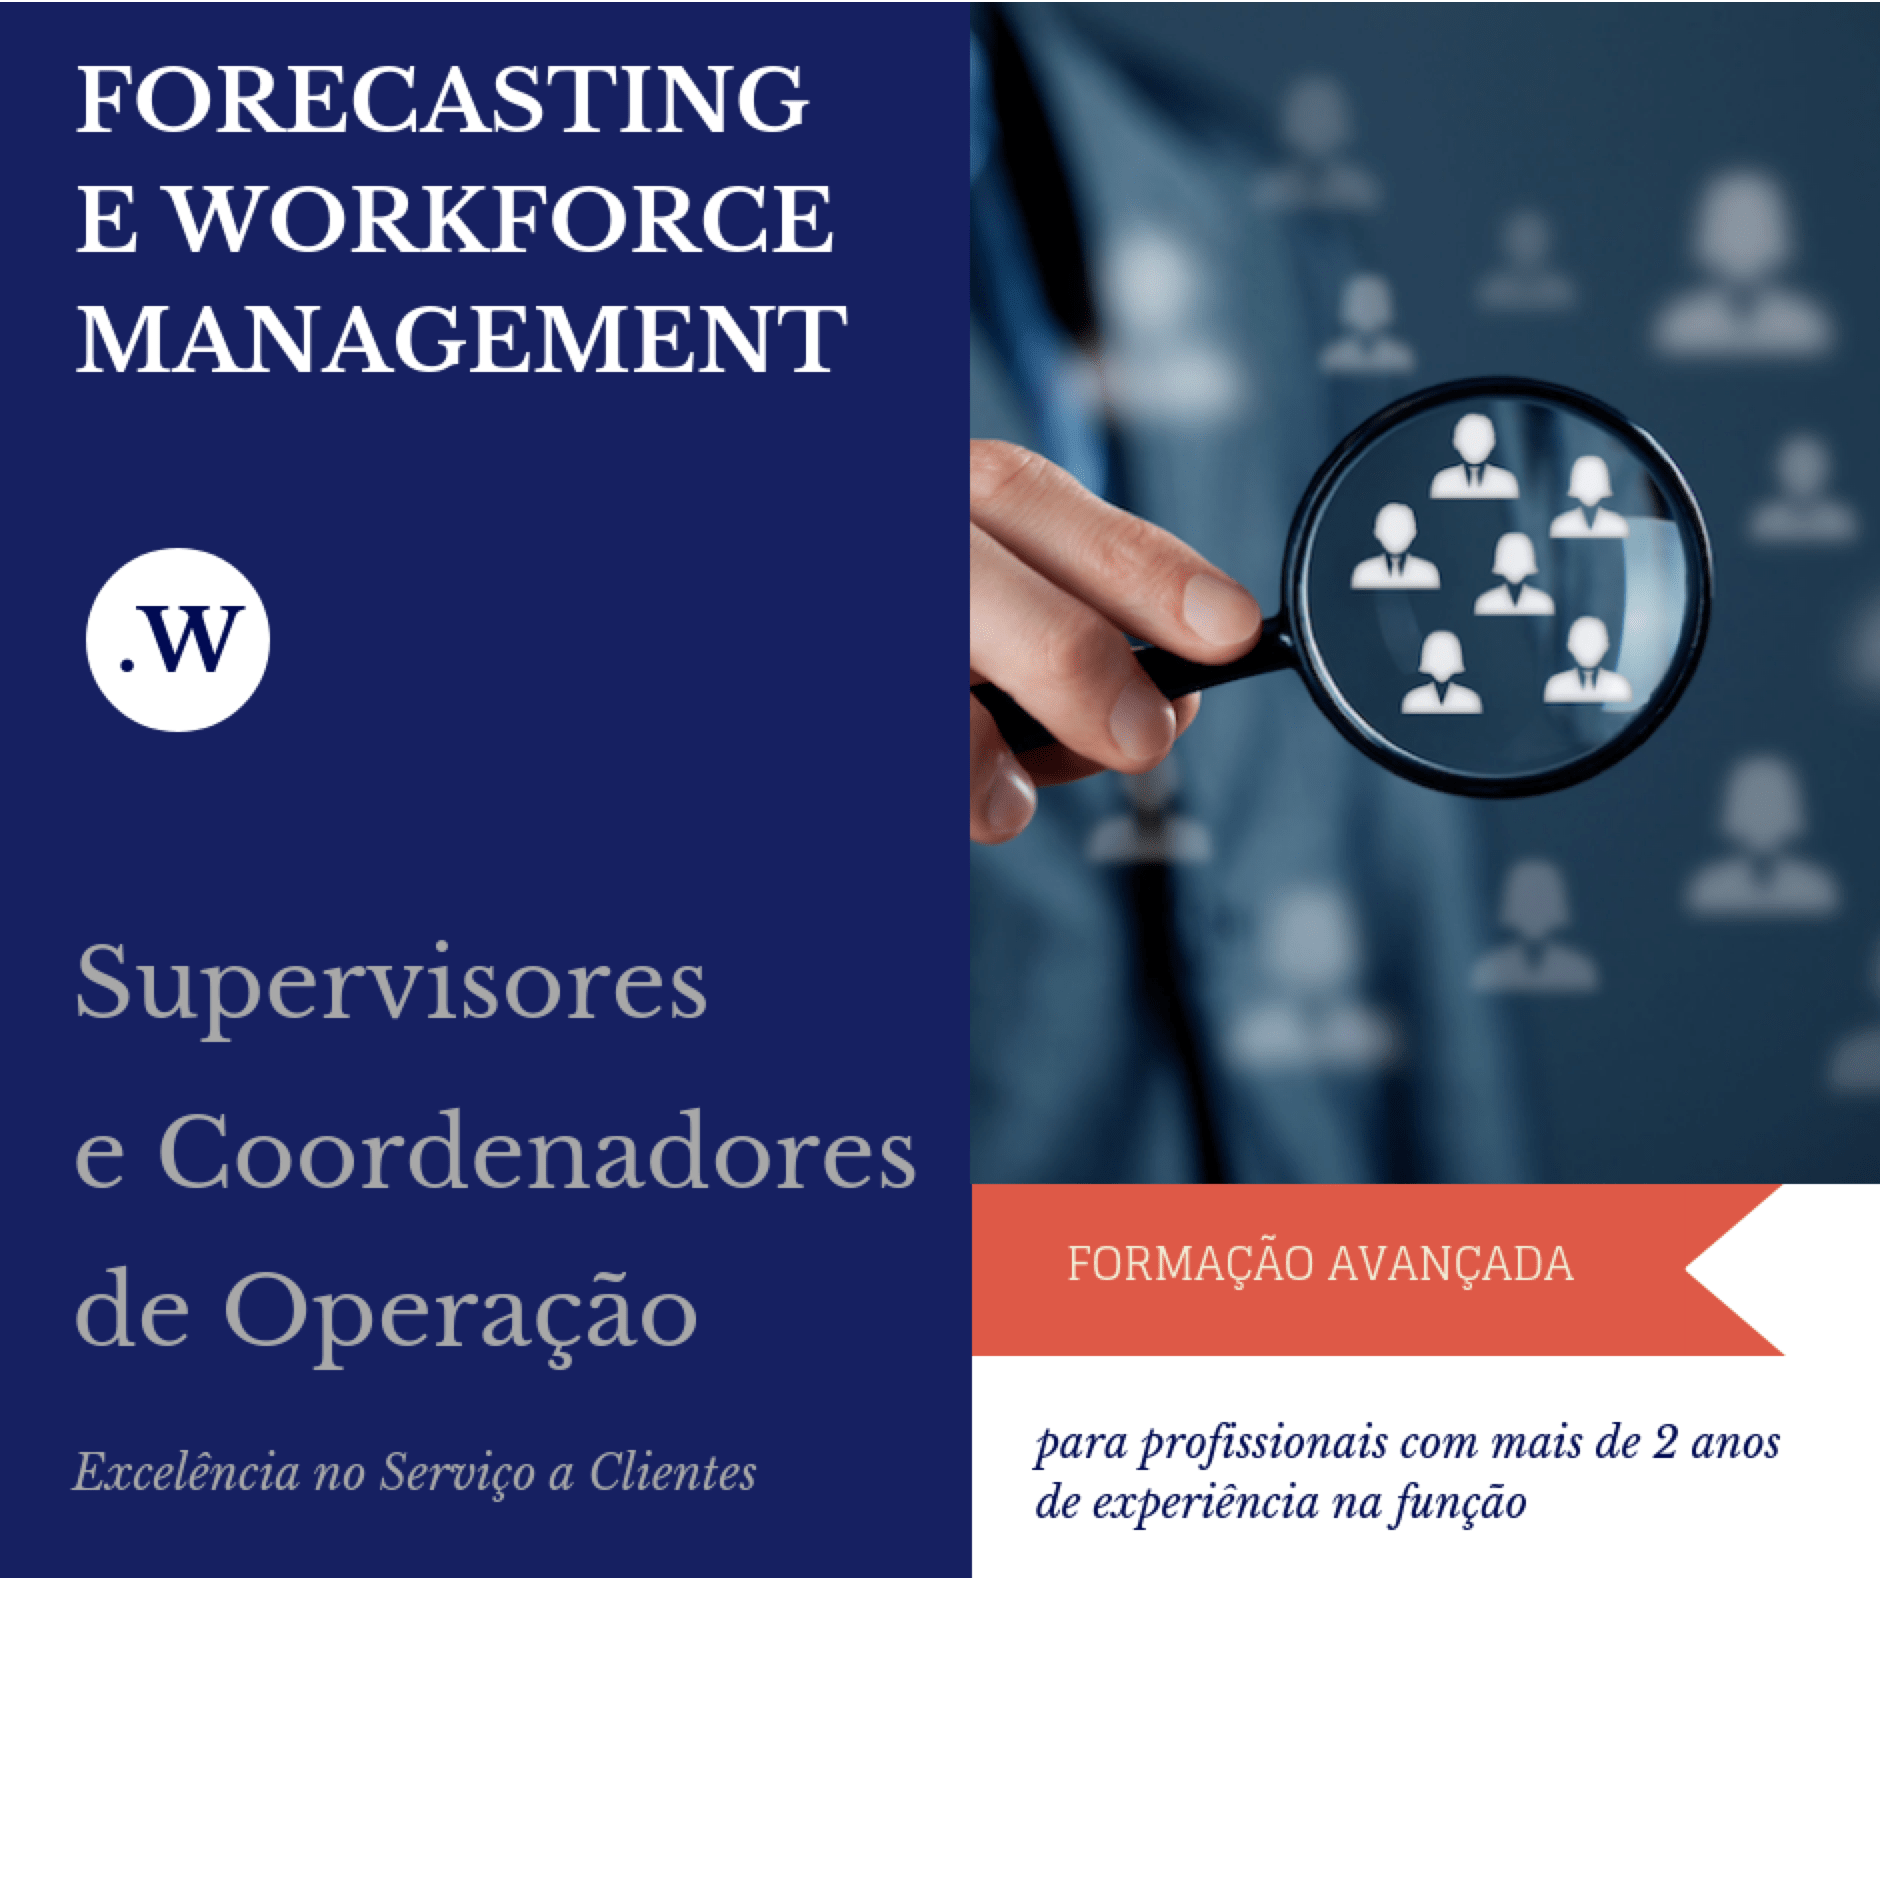 Forecasting e Workforce Management